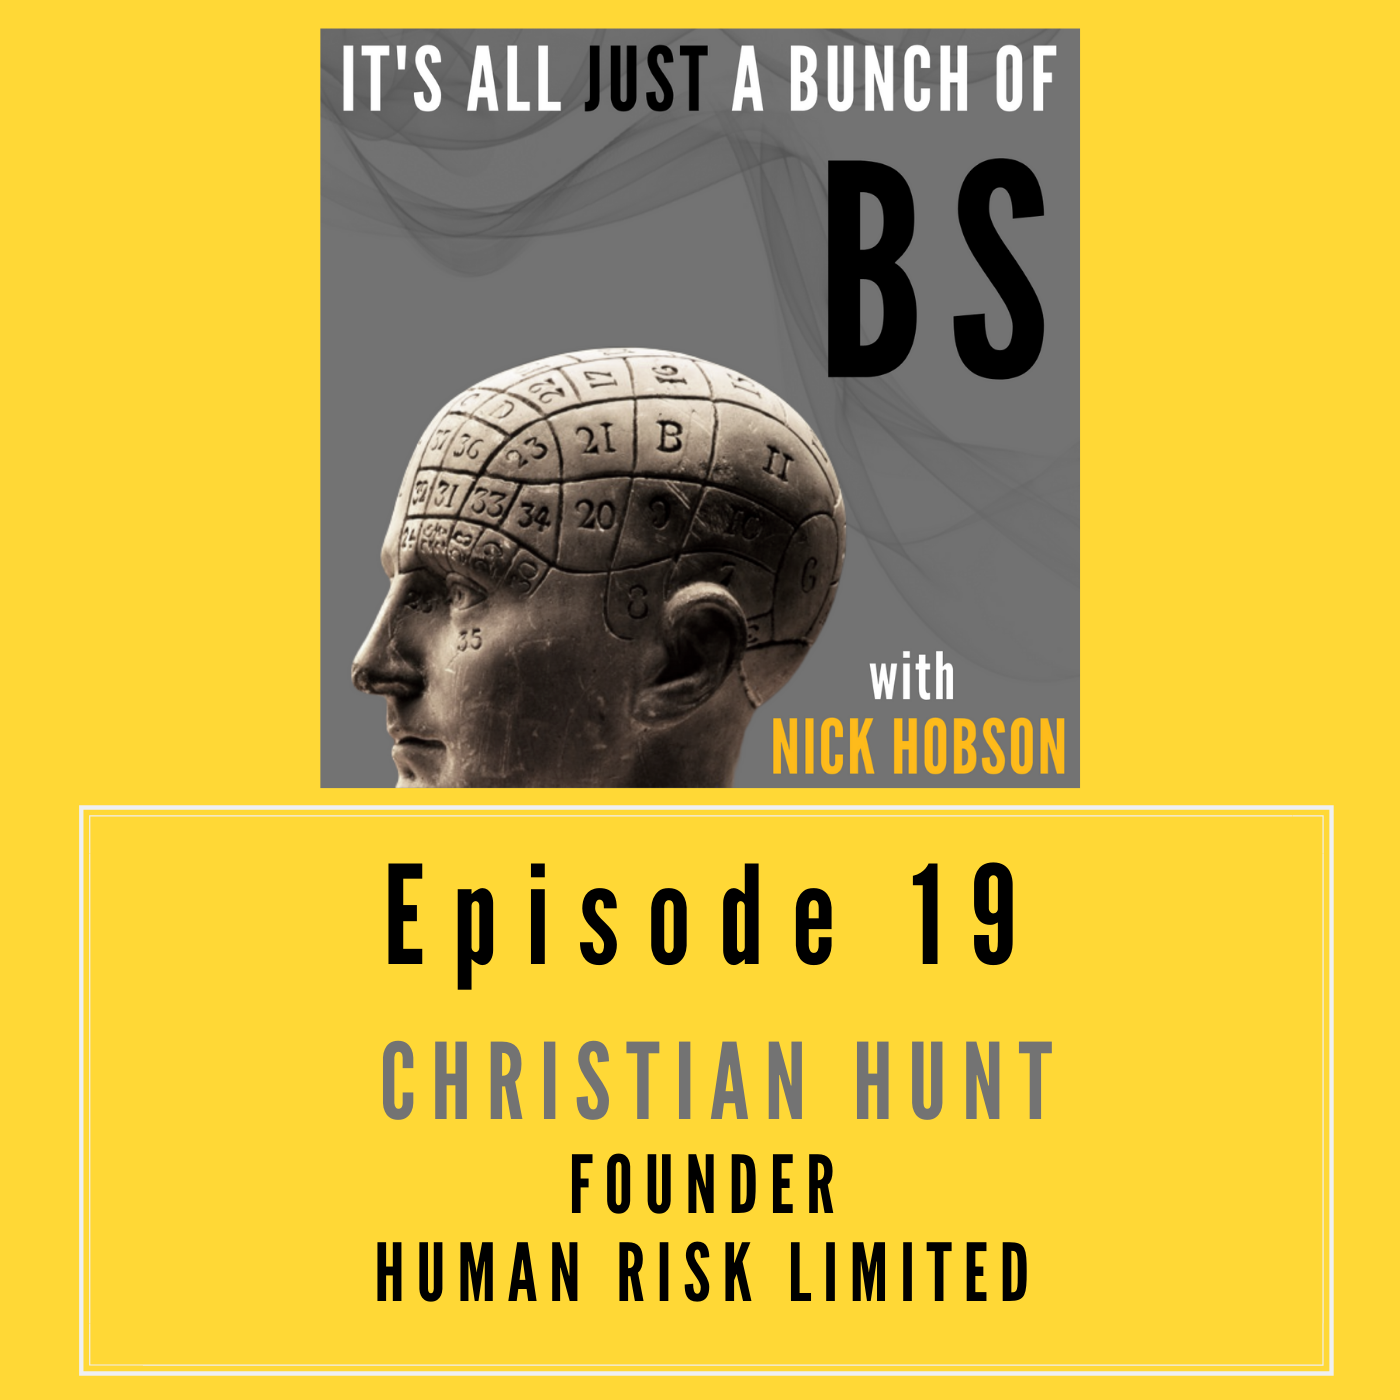 Episode 19 with CHRISTIAN HUNT: Bringing Science to Compliance, or, When Good People to Bad Things